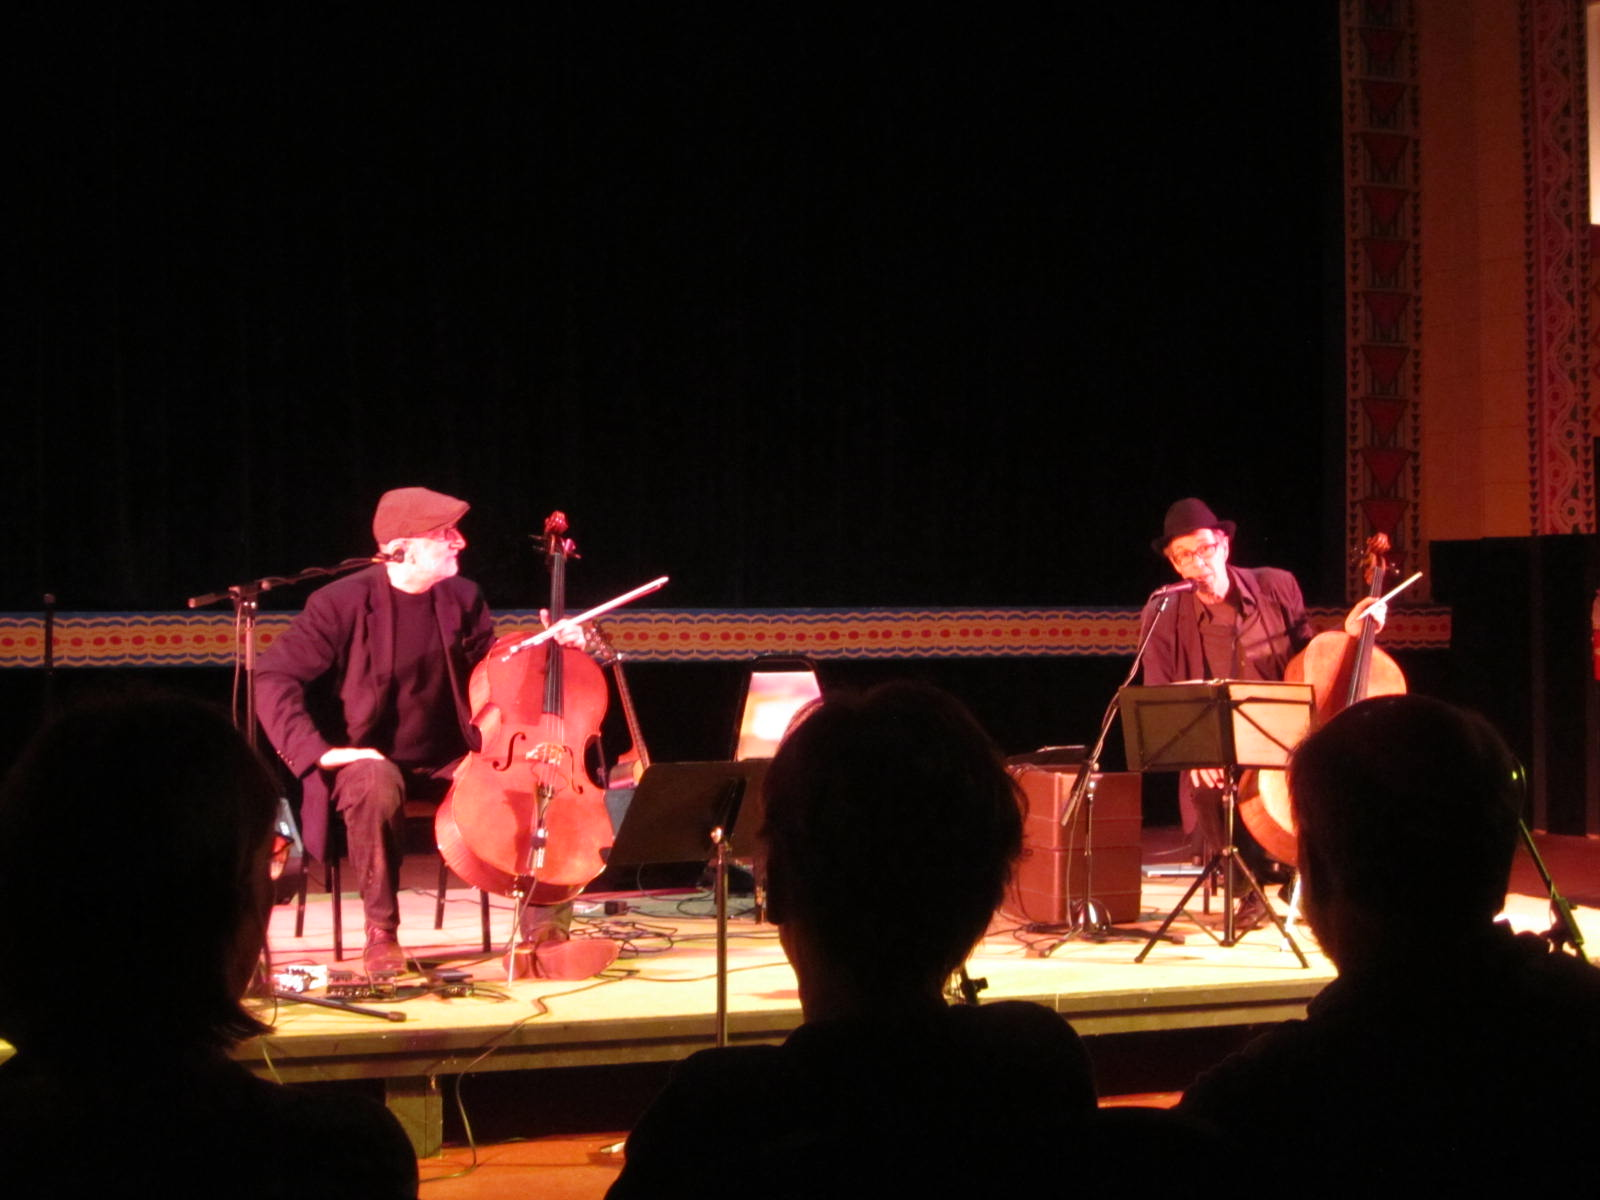 Two Cello, Two Friends, Two Nights cello concert garden theater jazz tango